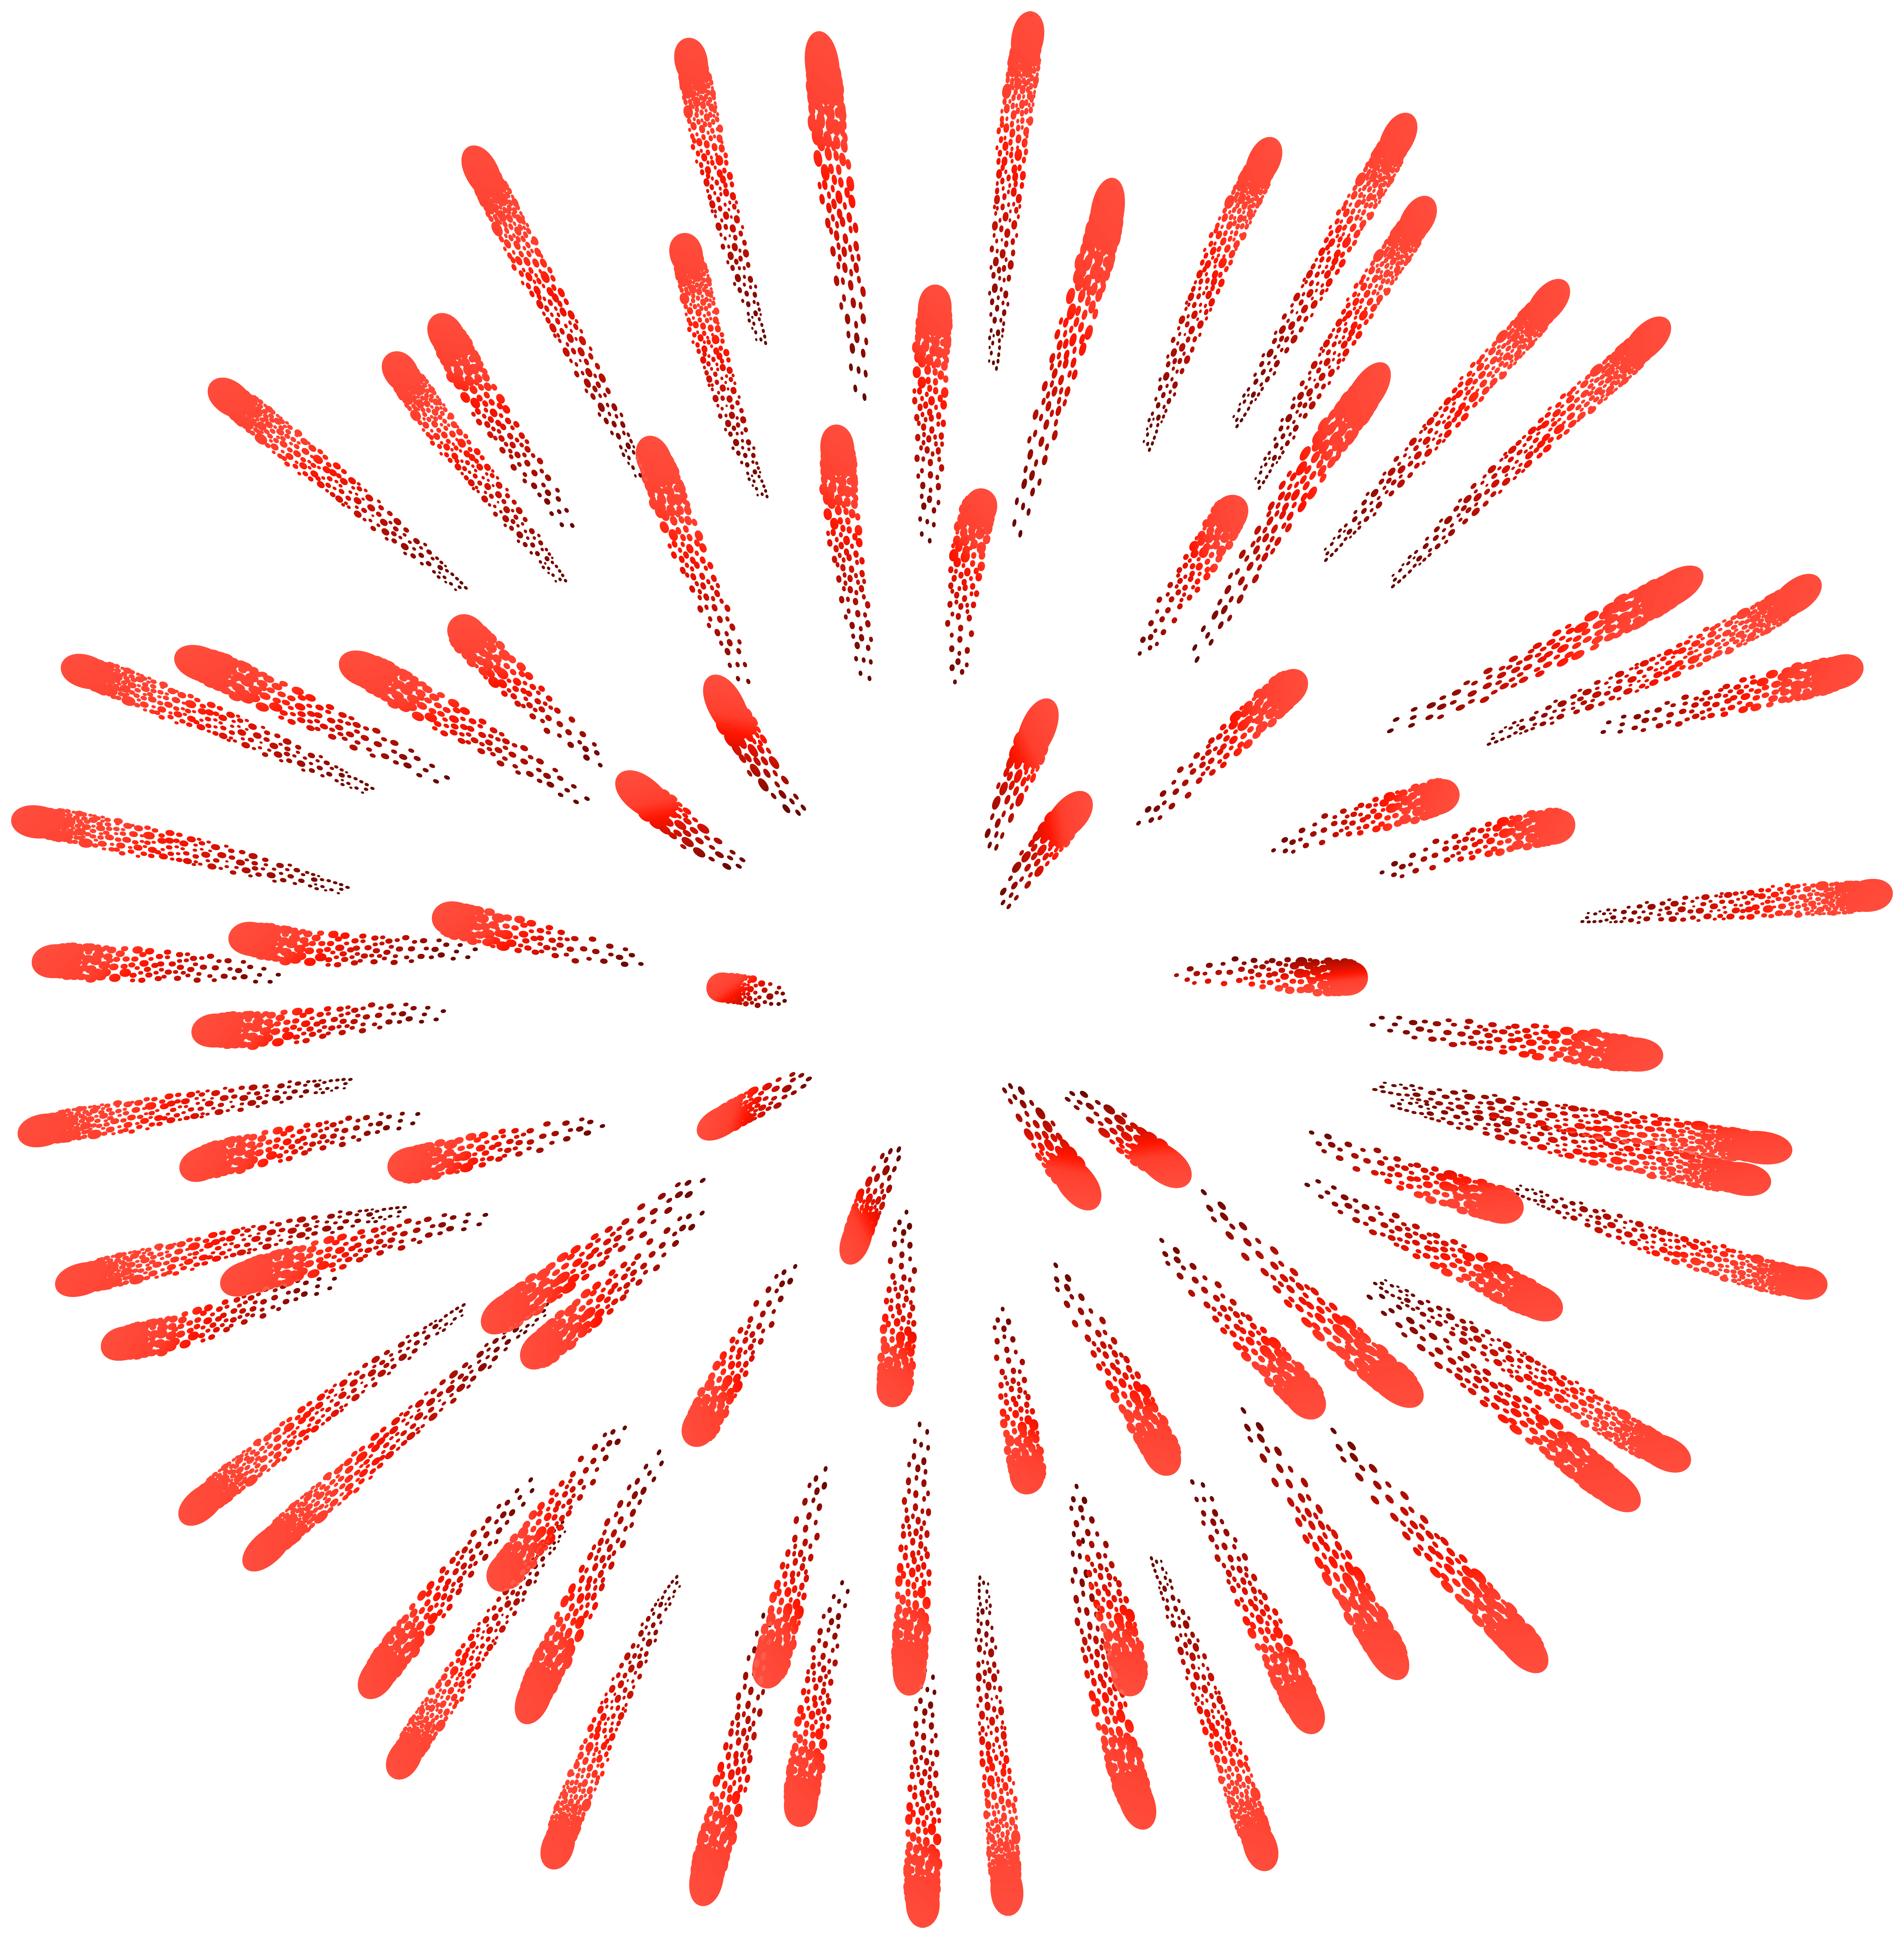 Firework png. Red clip art image